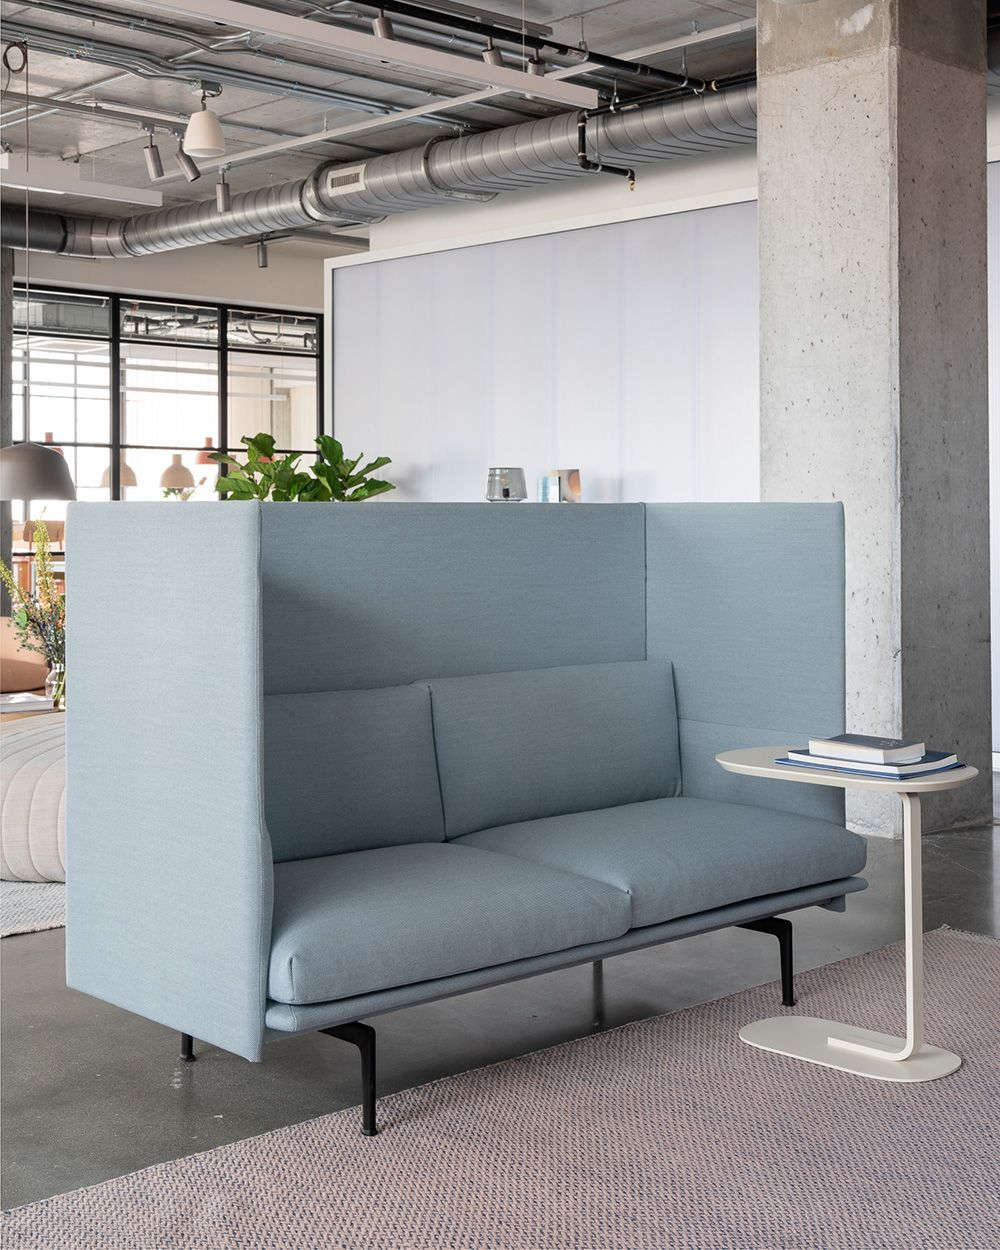 Minimal And Modern Office Sofa Interior Inspiration From Muuto The Outline Highback Sofa Combines Office Sofa Design Scandinavian Furniture Design Office Sofa